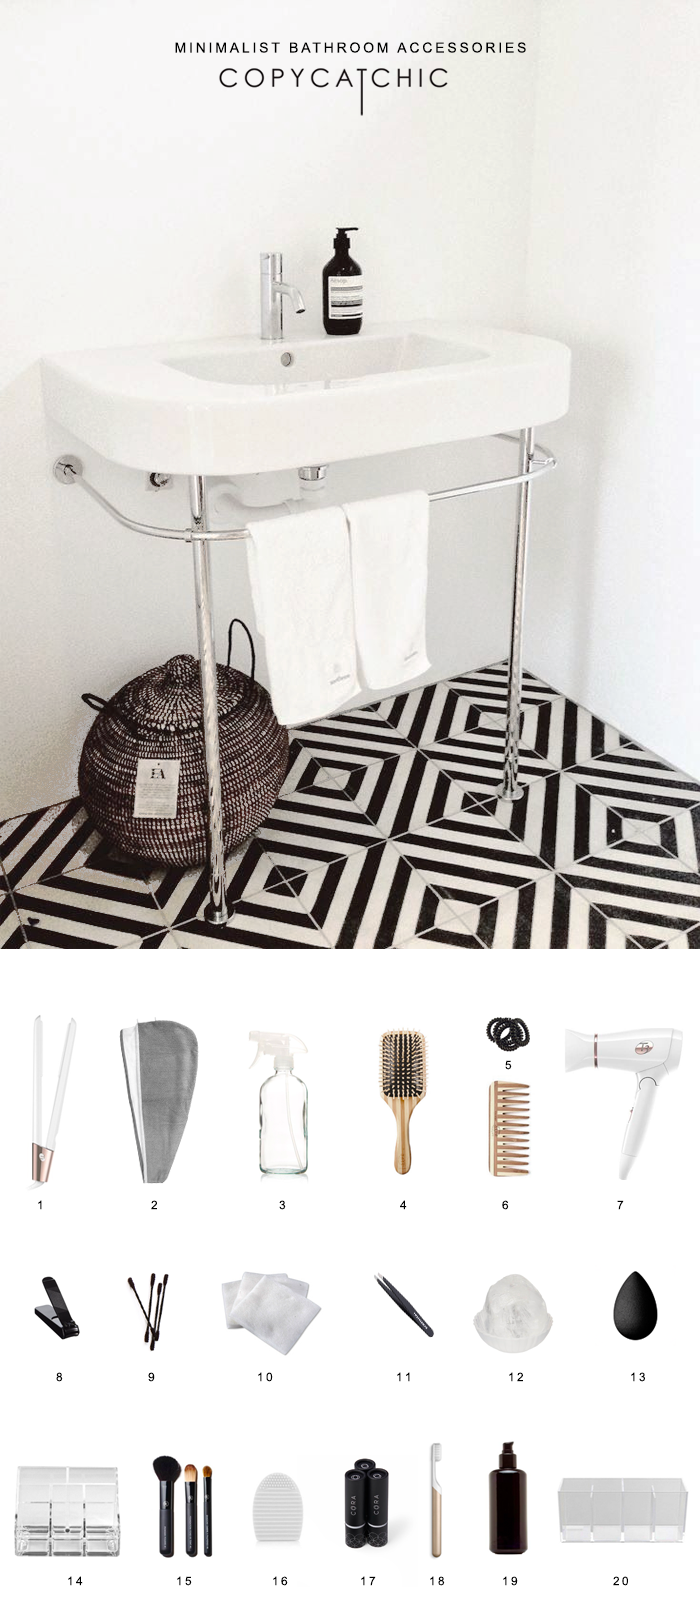 Minimalist Modern Bathroom Supplies | Decluttering the bathroom and organizing it with eco-friendly products while giving it a modern minimalist look. @copycatchic | home decor and design